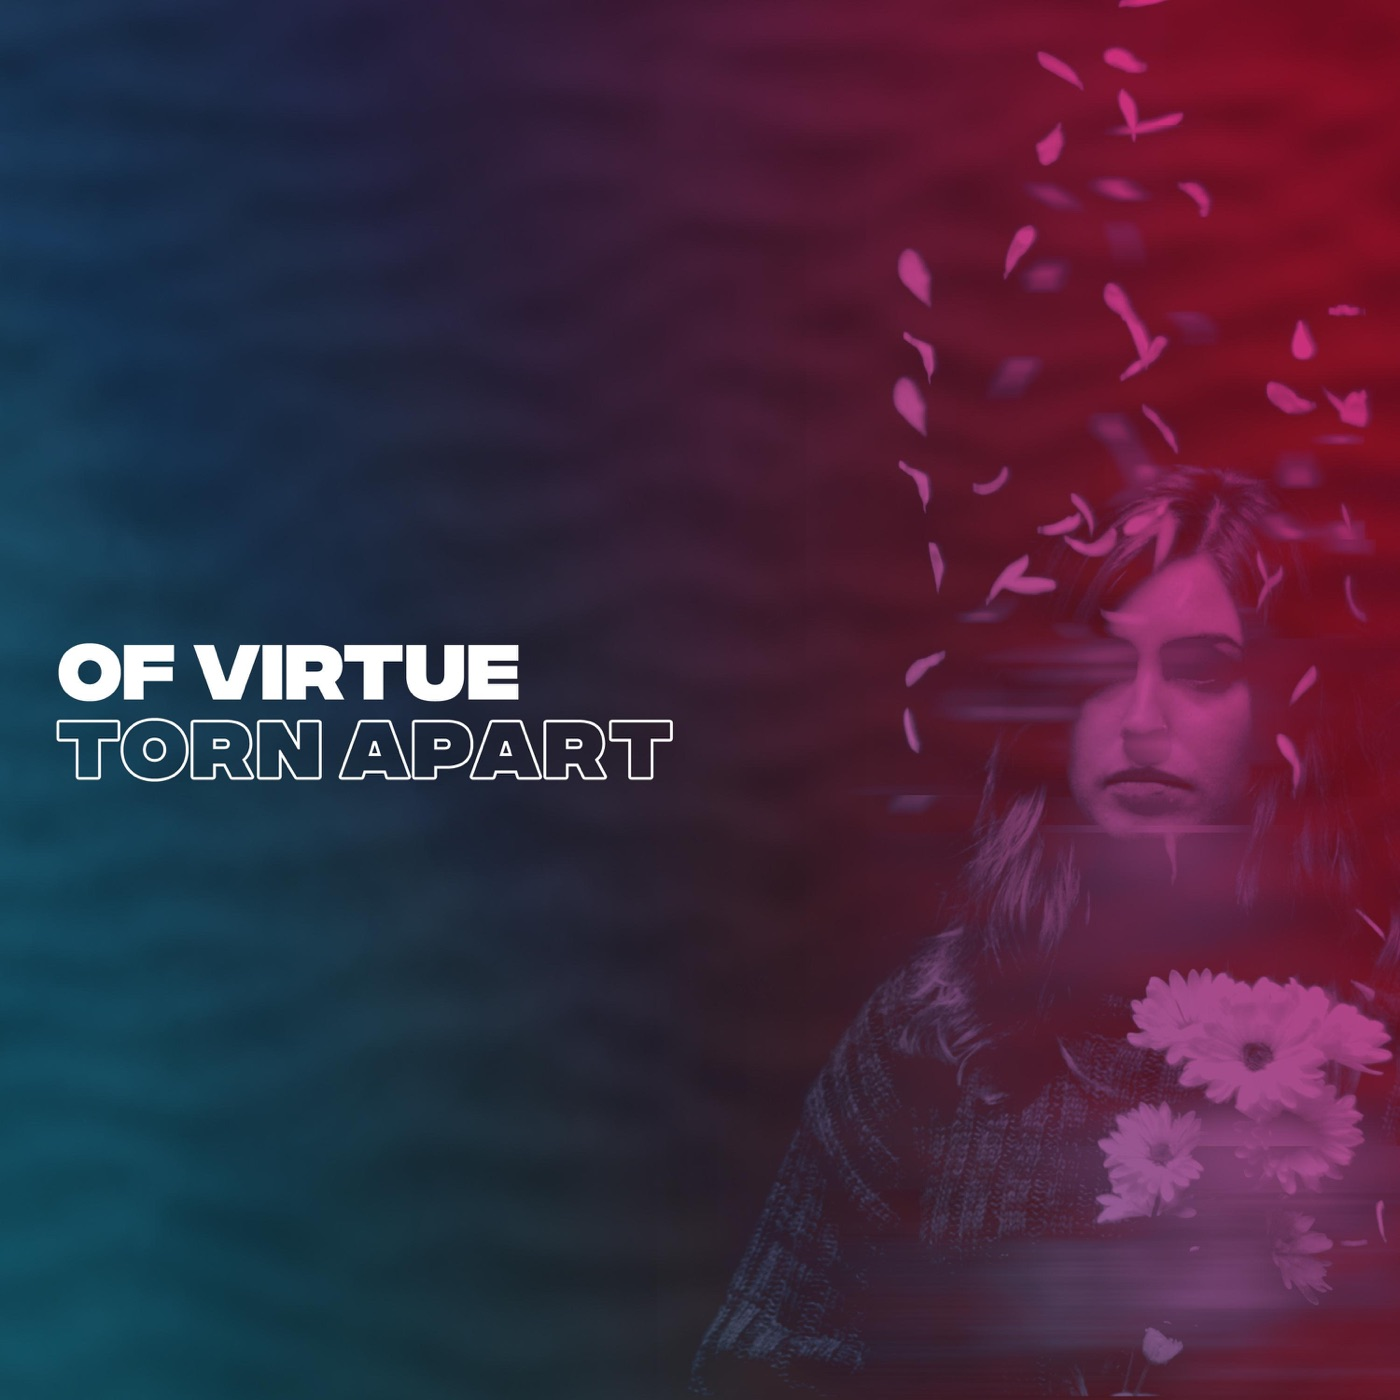 Of Virtue - Torn Apart [Single] (2018)